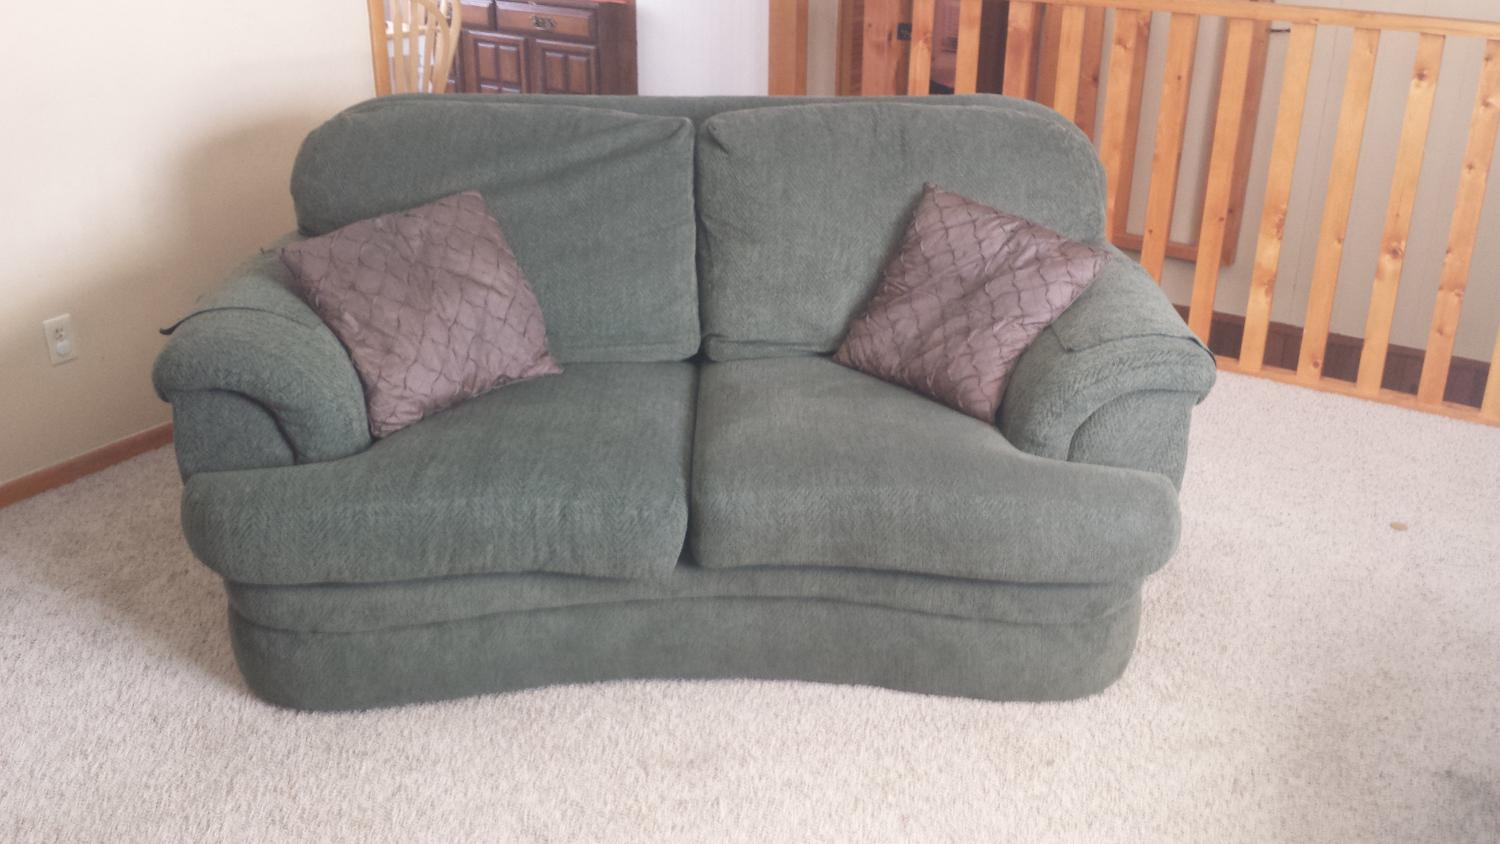 Best Overstuffed Loveseat For Sale In Jefferson City Missouri For 2018